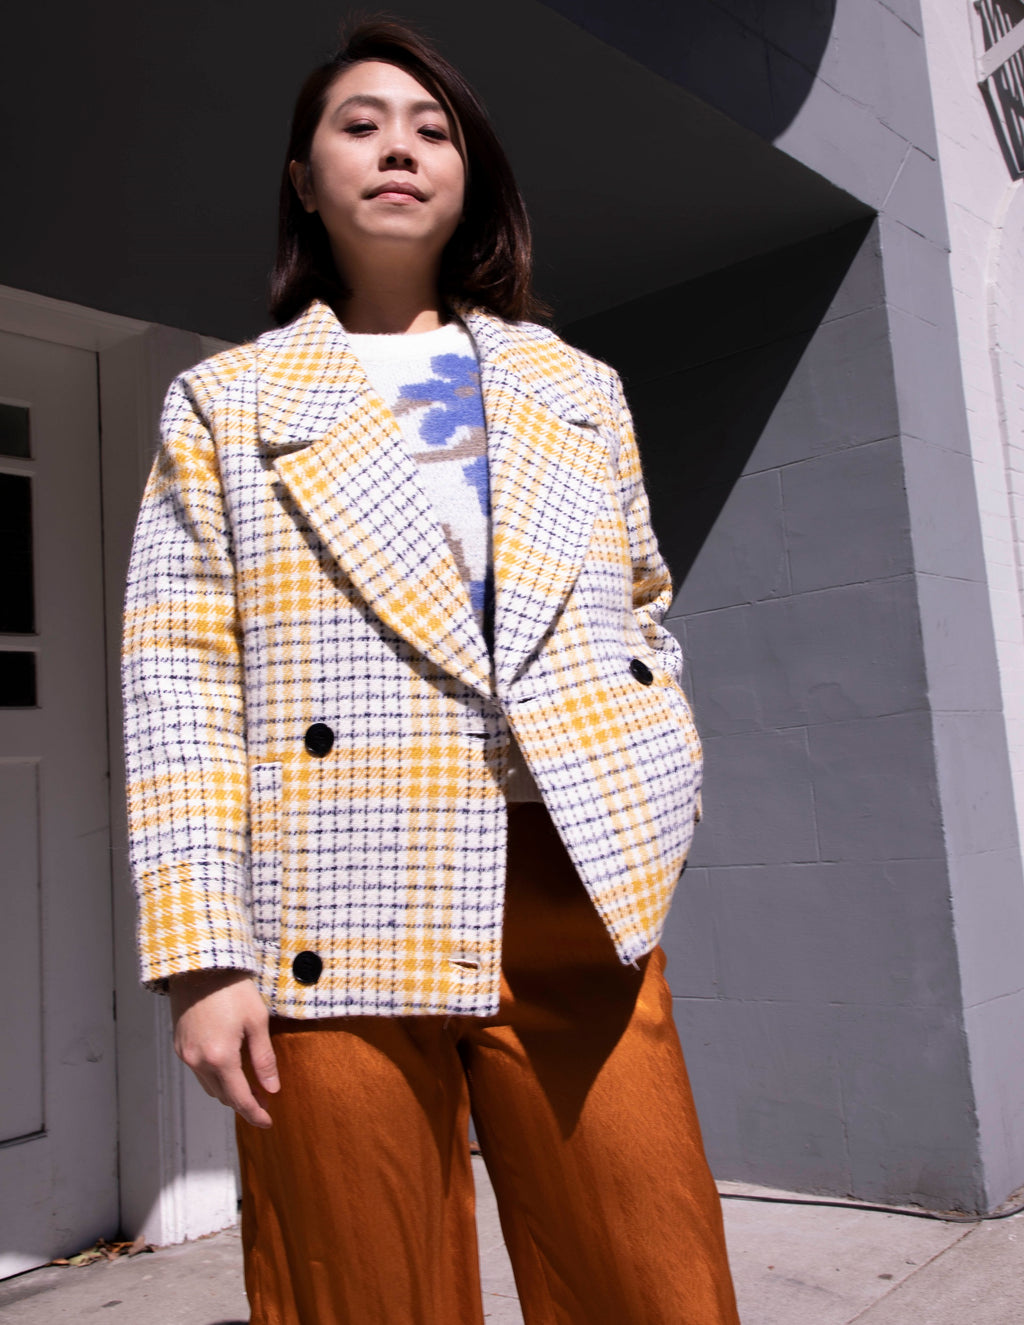 Yellow Wool-Blend Shani Check Coat - picnic-sf